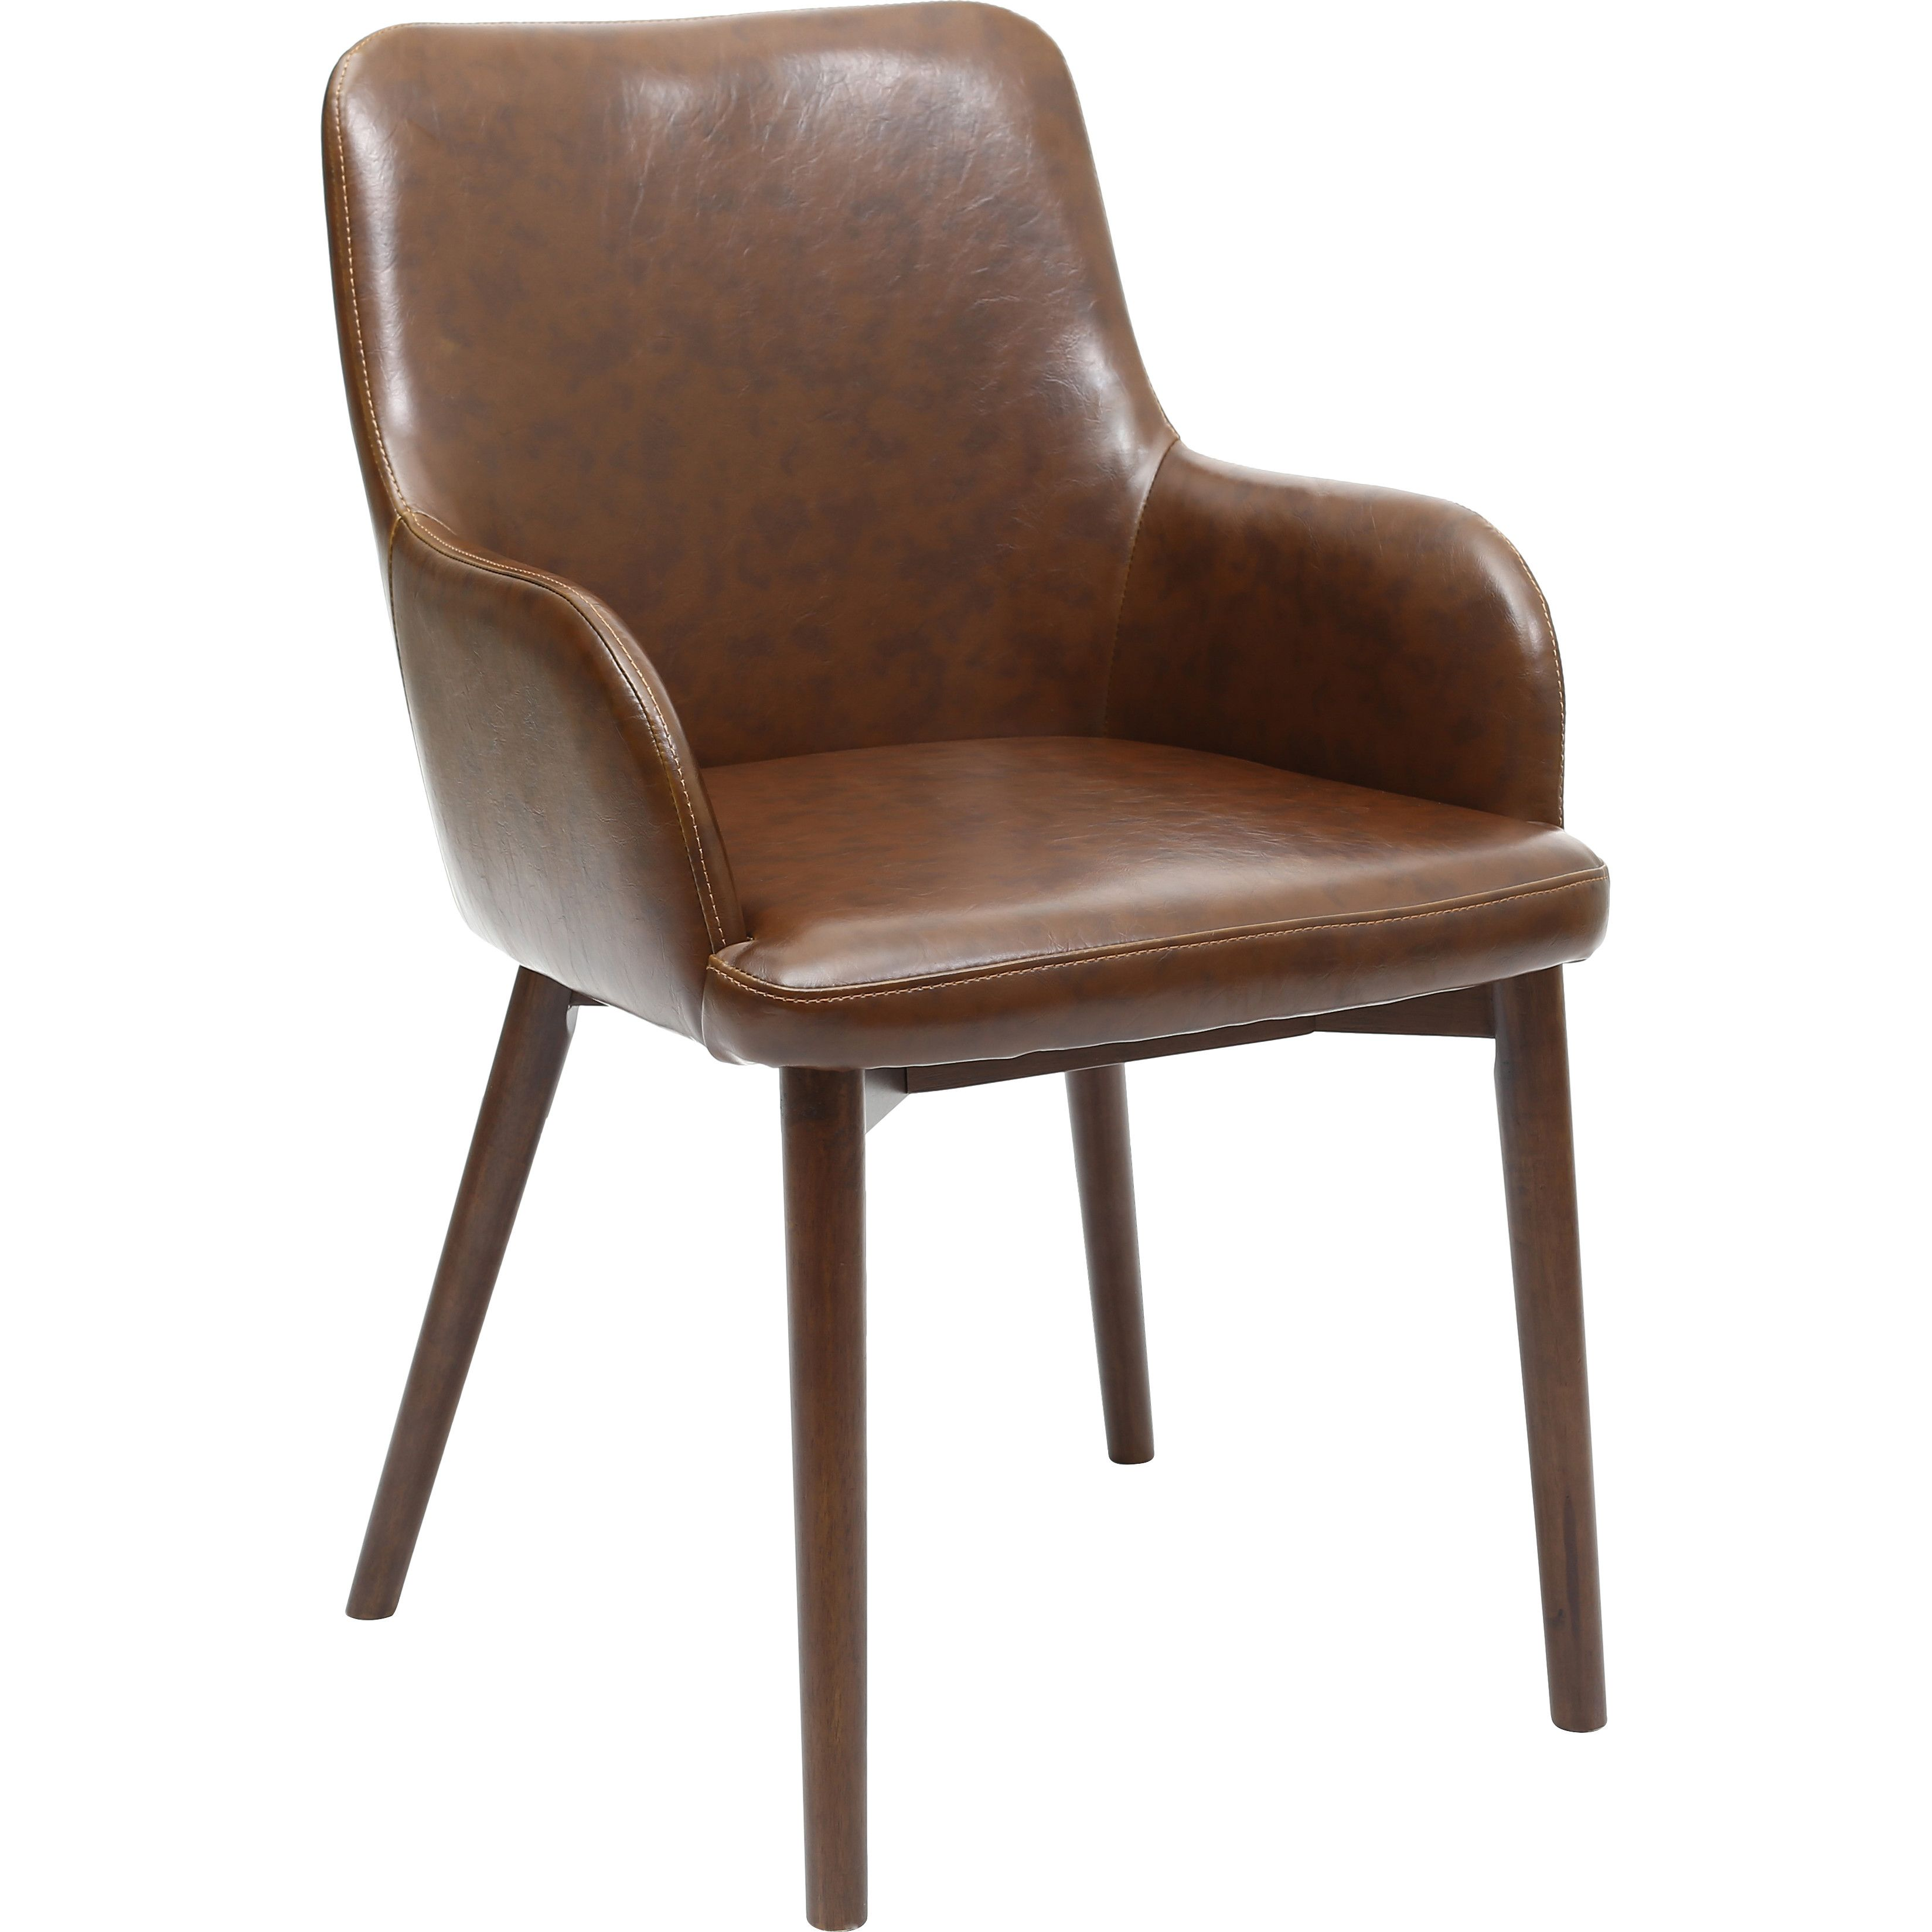 Woodhaven Hill Riley Upholstered Dining Chair, £280